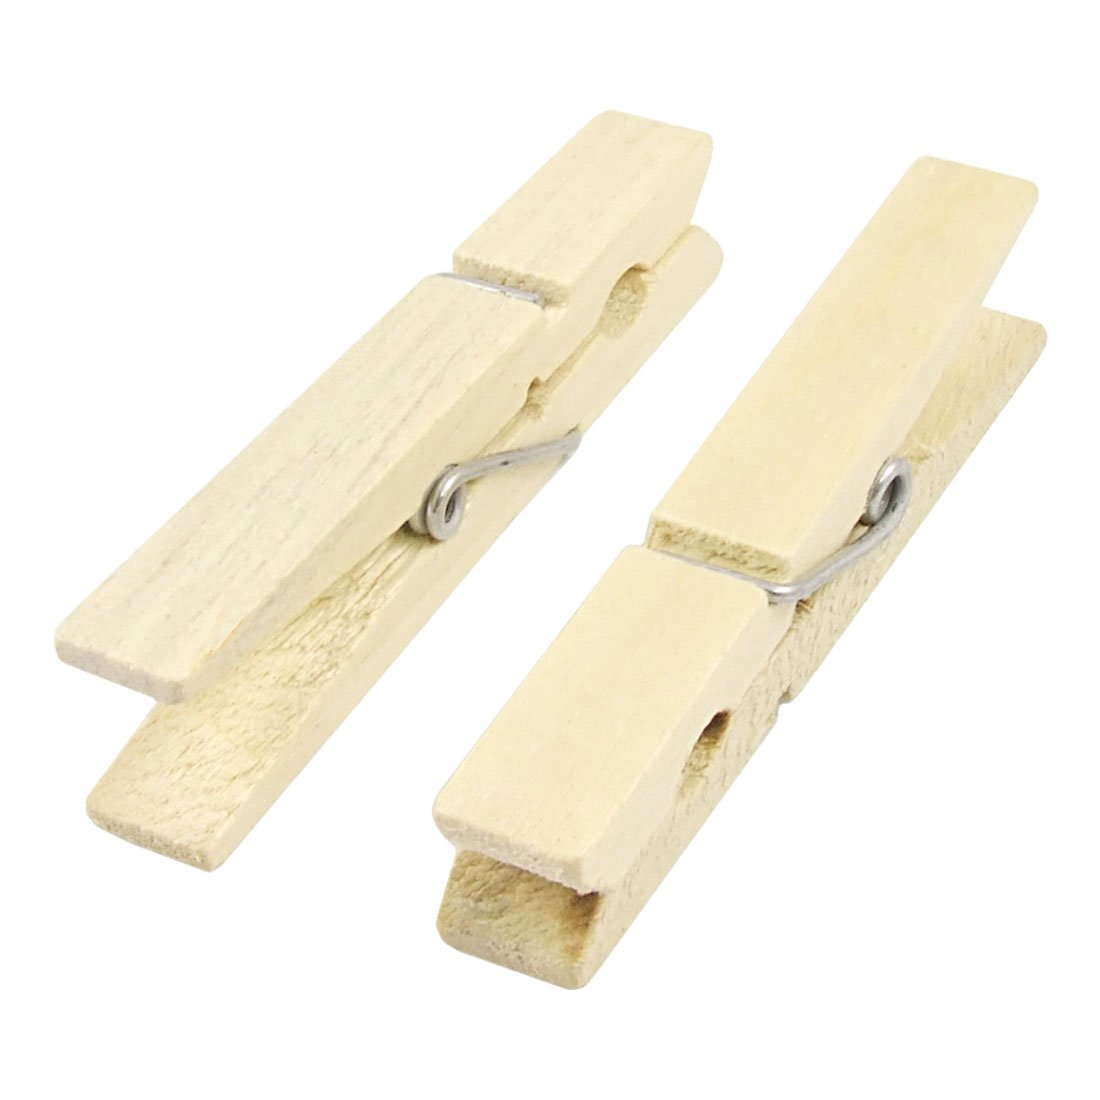 100 Pcs Wood Clothespins Wooden Laundry Clothes Pins Large Spring Regular Size New